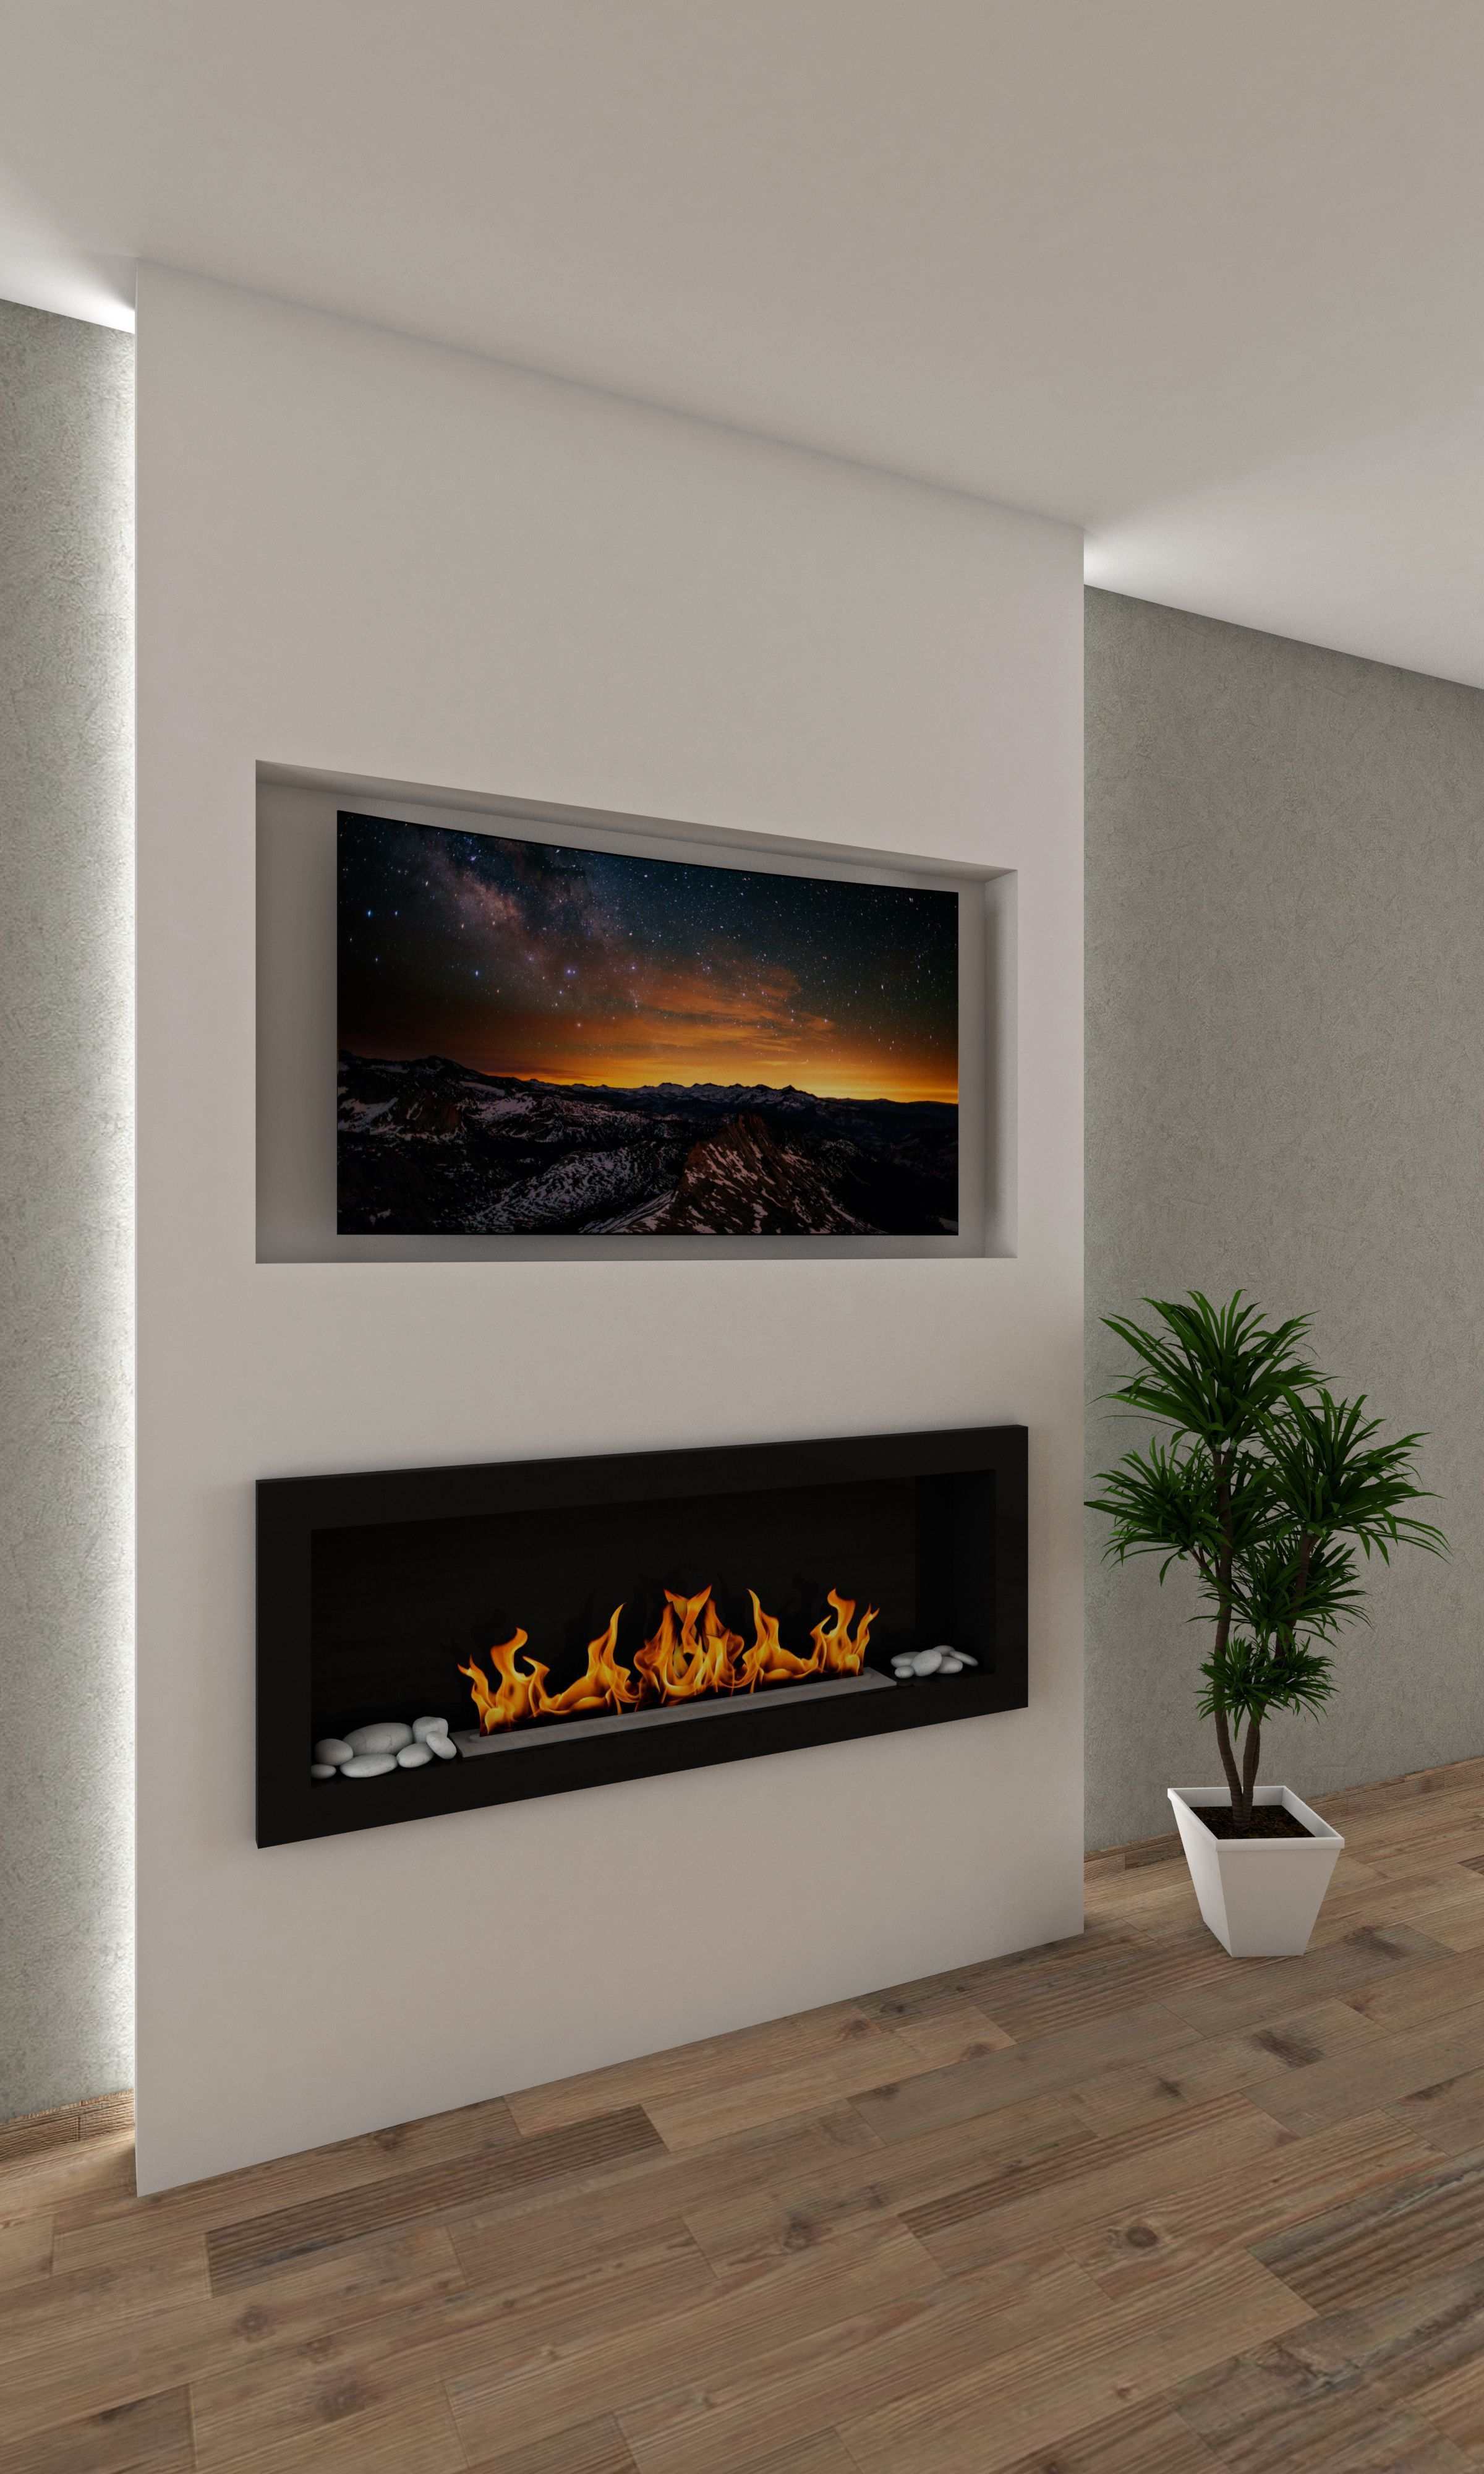 50 Inch Recessed Electric Fireplace Elegant Pin On Fireplace